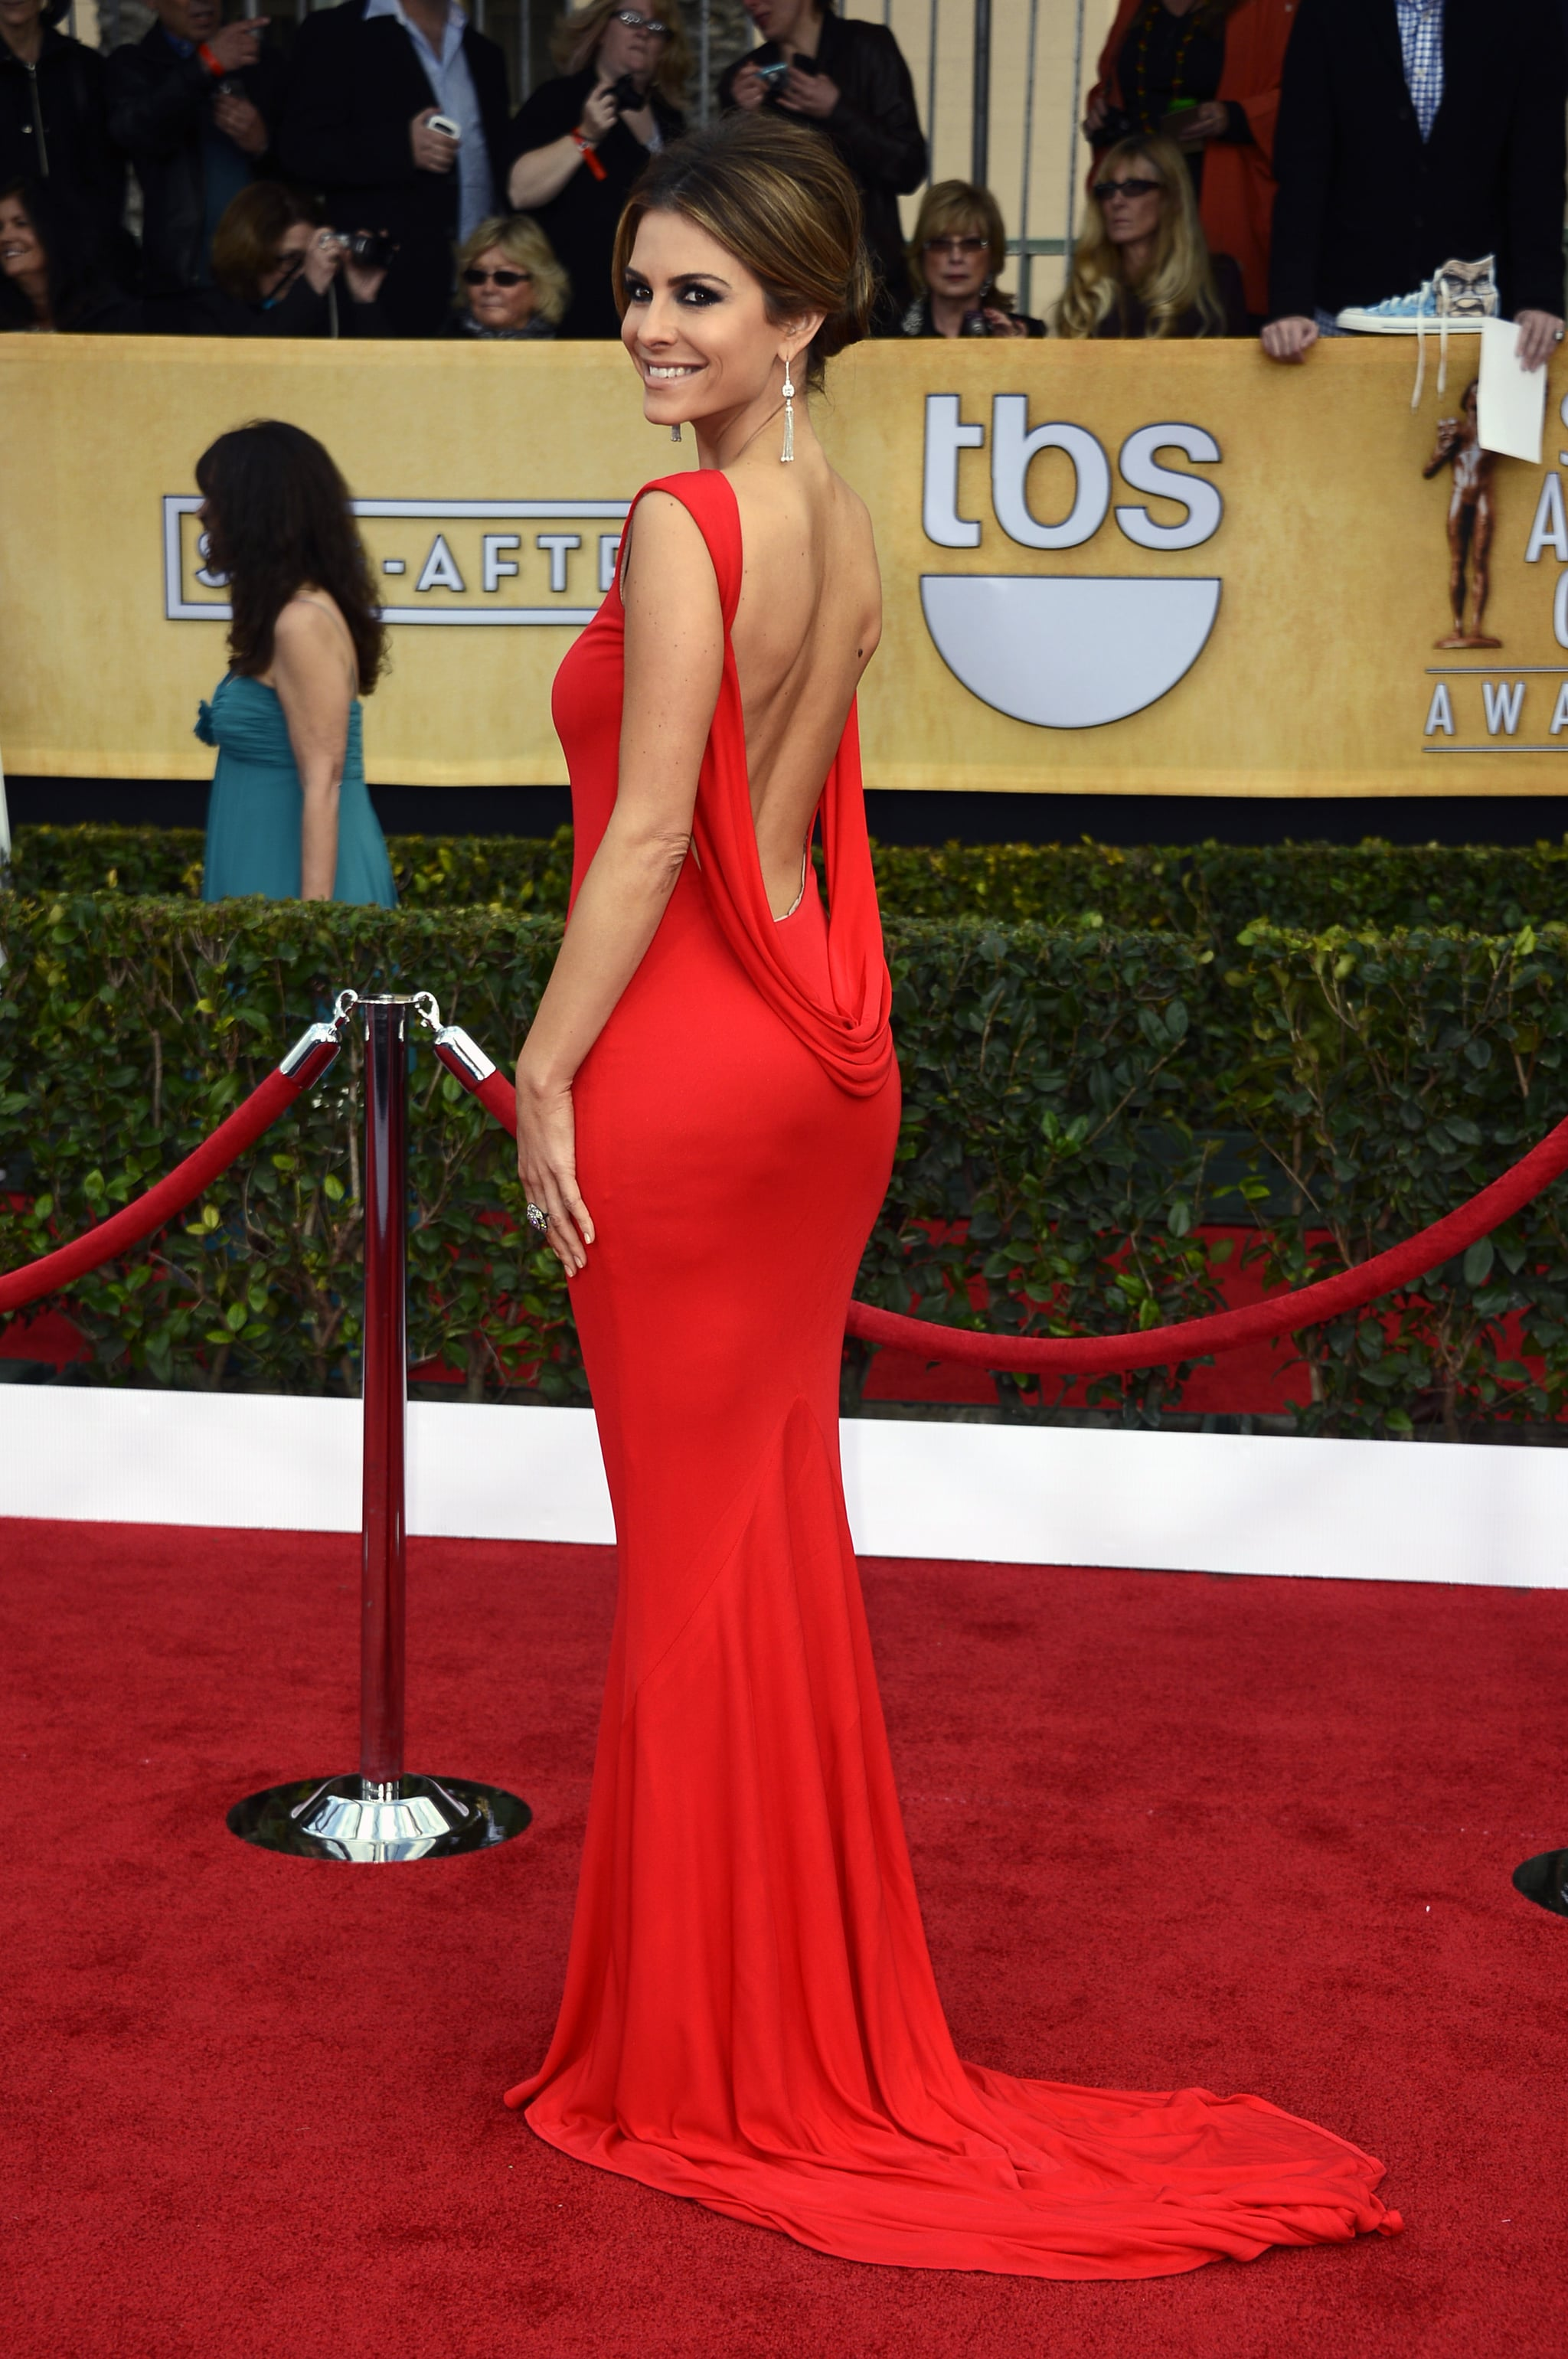 Maria Menounos Brought Sexy Back In A Fiery Red Confection By